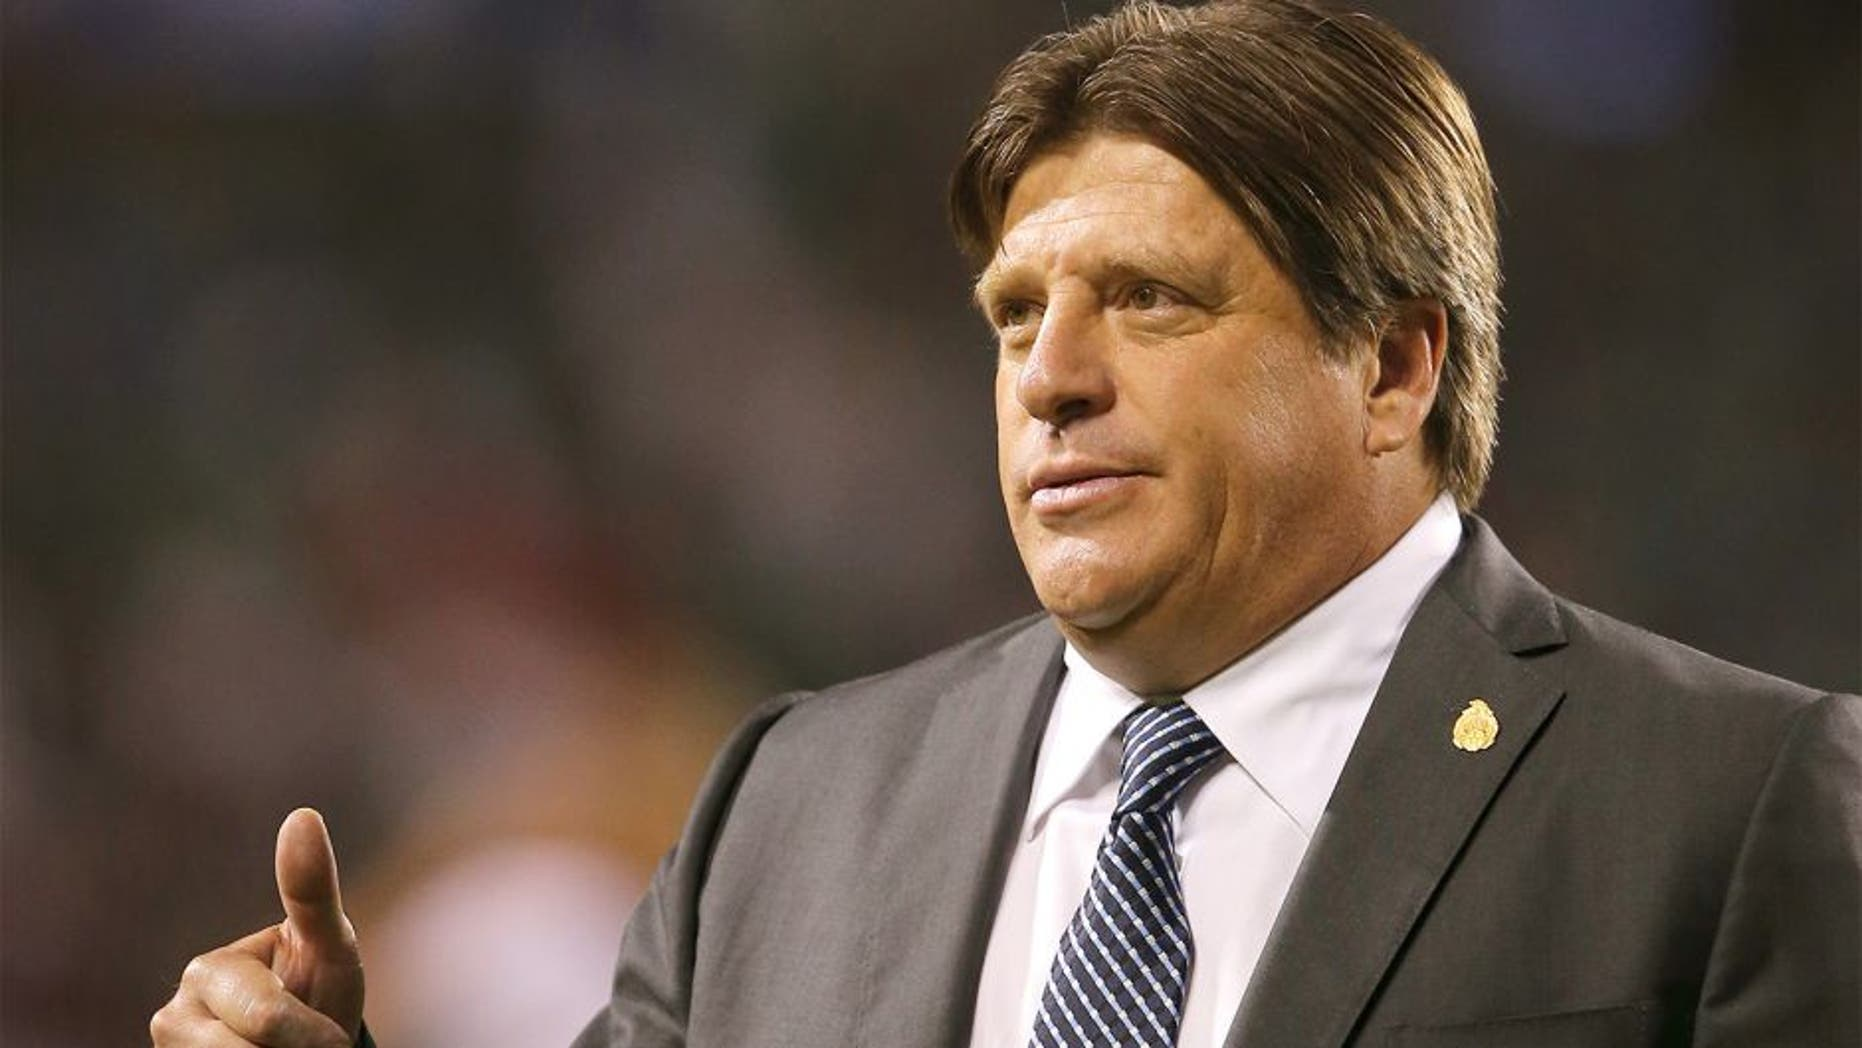 CHICAGO, USA - JULY 09: Miguel Herrera the head coach / manager of Mexico during the CONCACAF Gold Cup match between Mexico and Cuba at Soldier Field on July 9, 2015 in Chicago, Illinois. (Photo by Matthew Ashton - AMA/Getty Images)